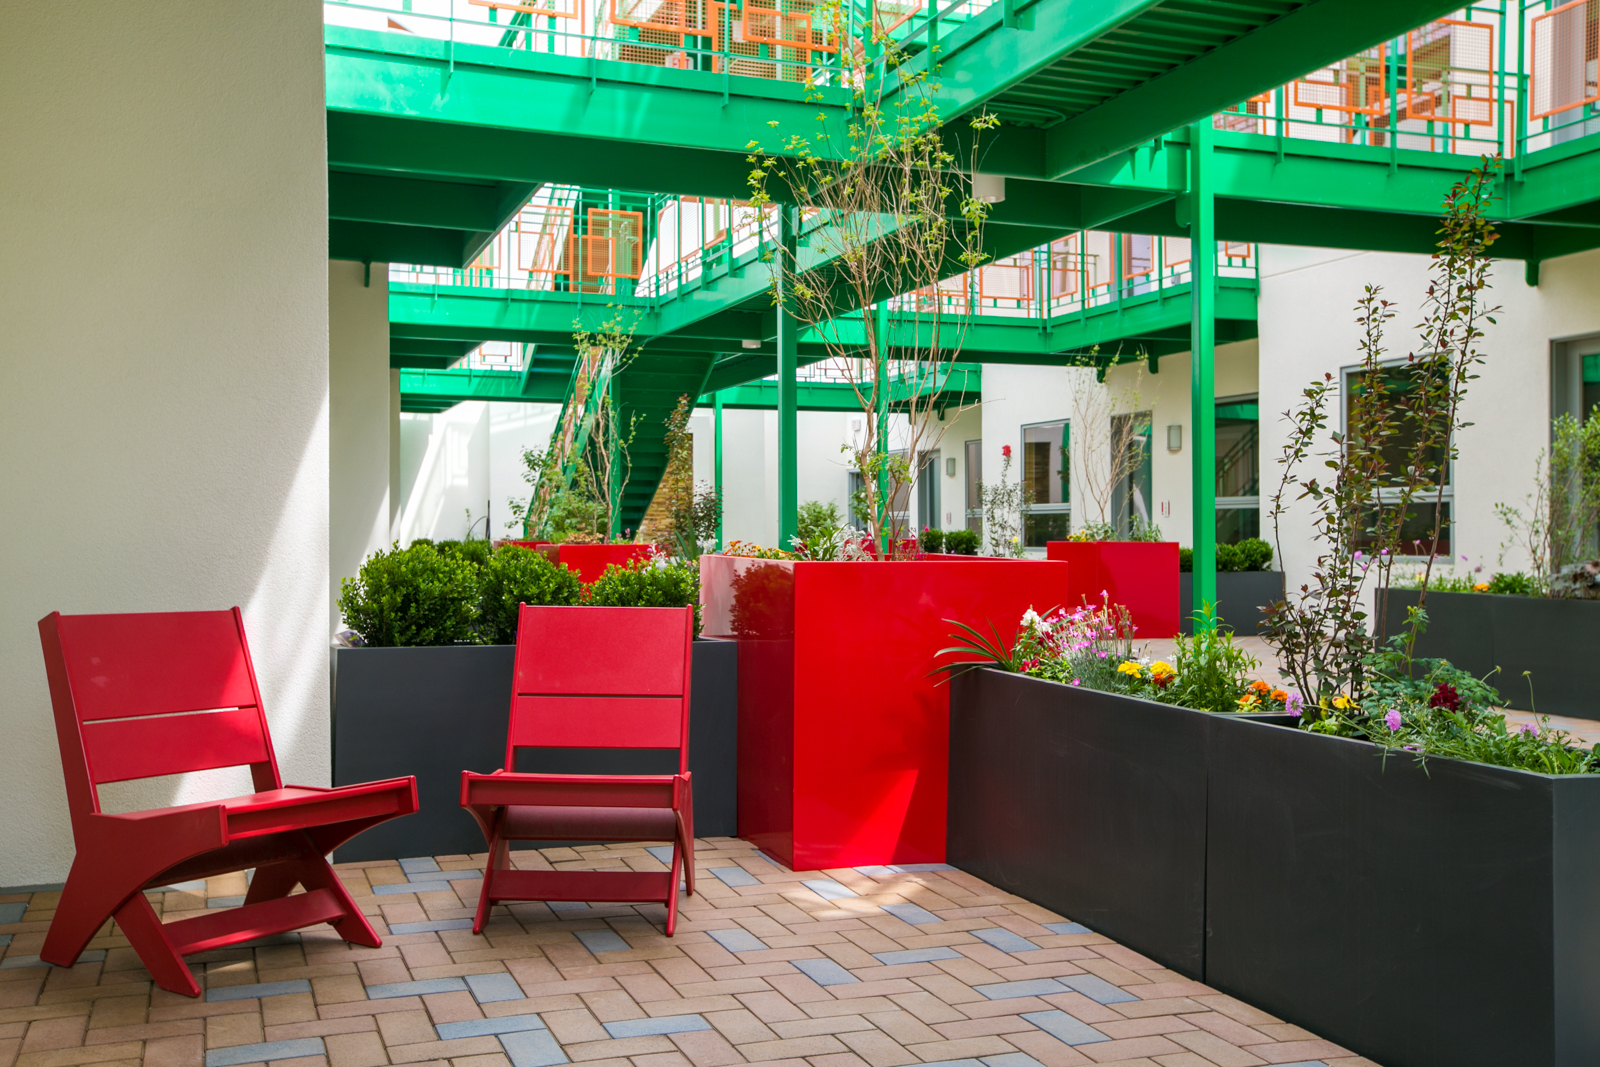 Our patio level offers an outdoor garden at your doorstep. Each patio level home has its own limited common area patio for your own furniture and private space. The center corridor is outdoor space for all owners to enjoy the garden.